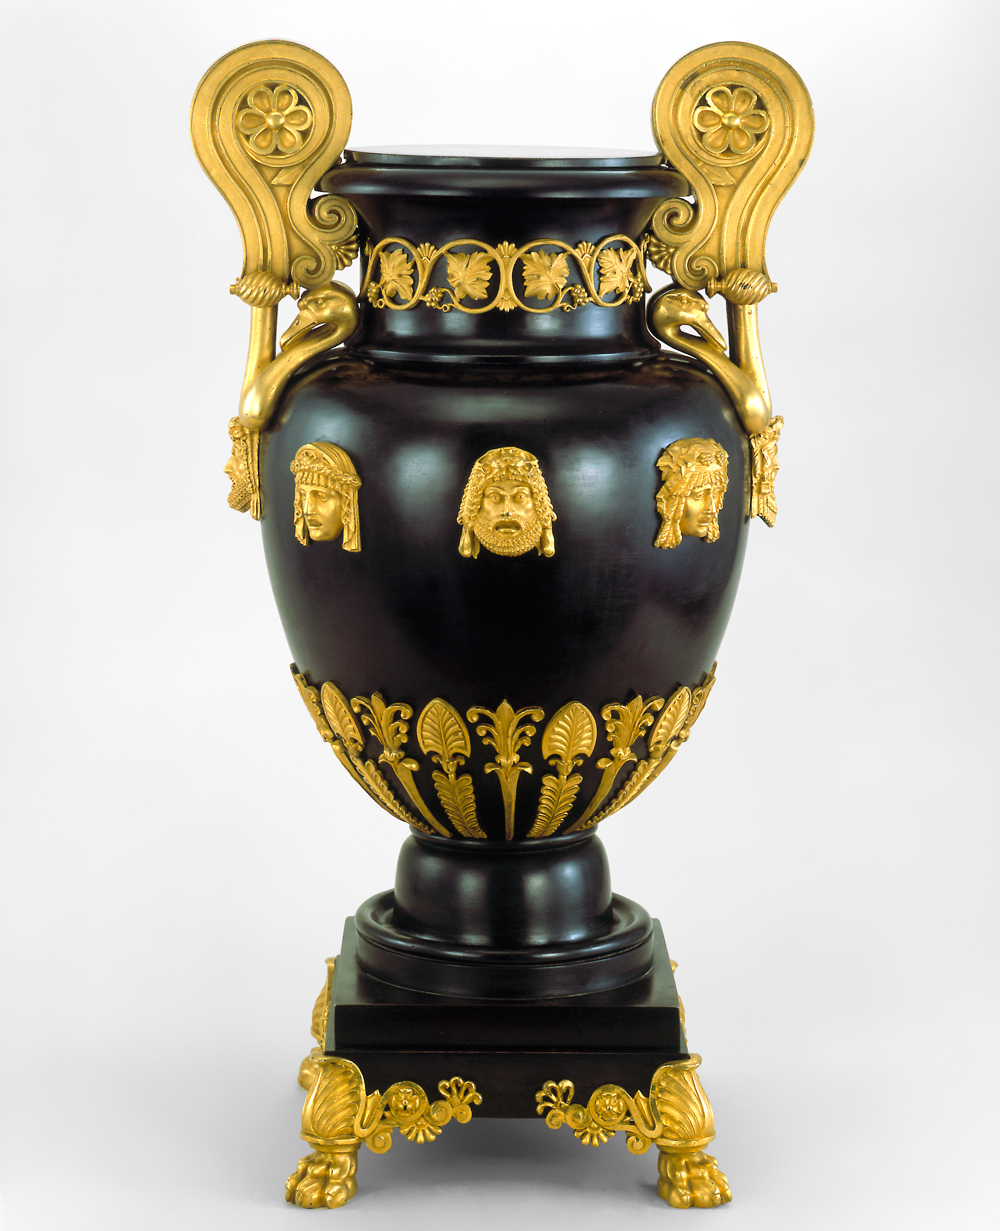 http://www.vam.ac.uk/__data/assets/image/0017/183014/2006AN9709_thomas_hope_urn.jpg